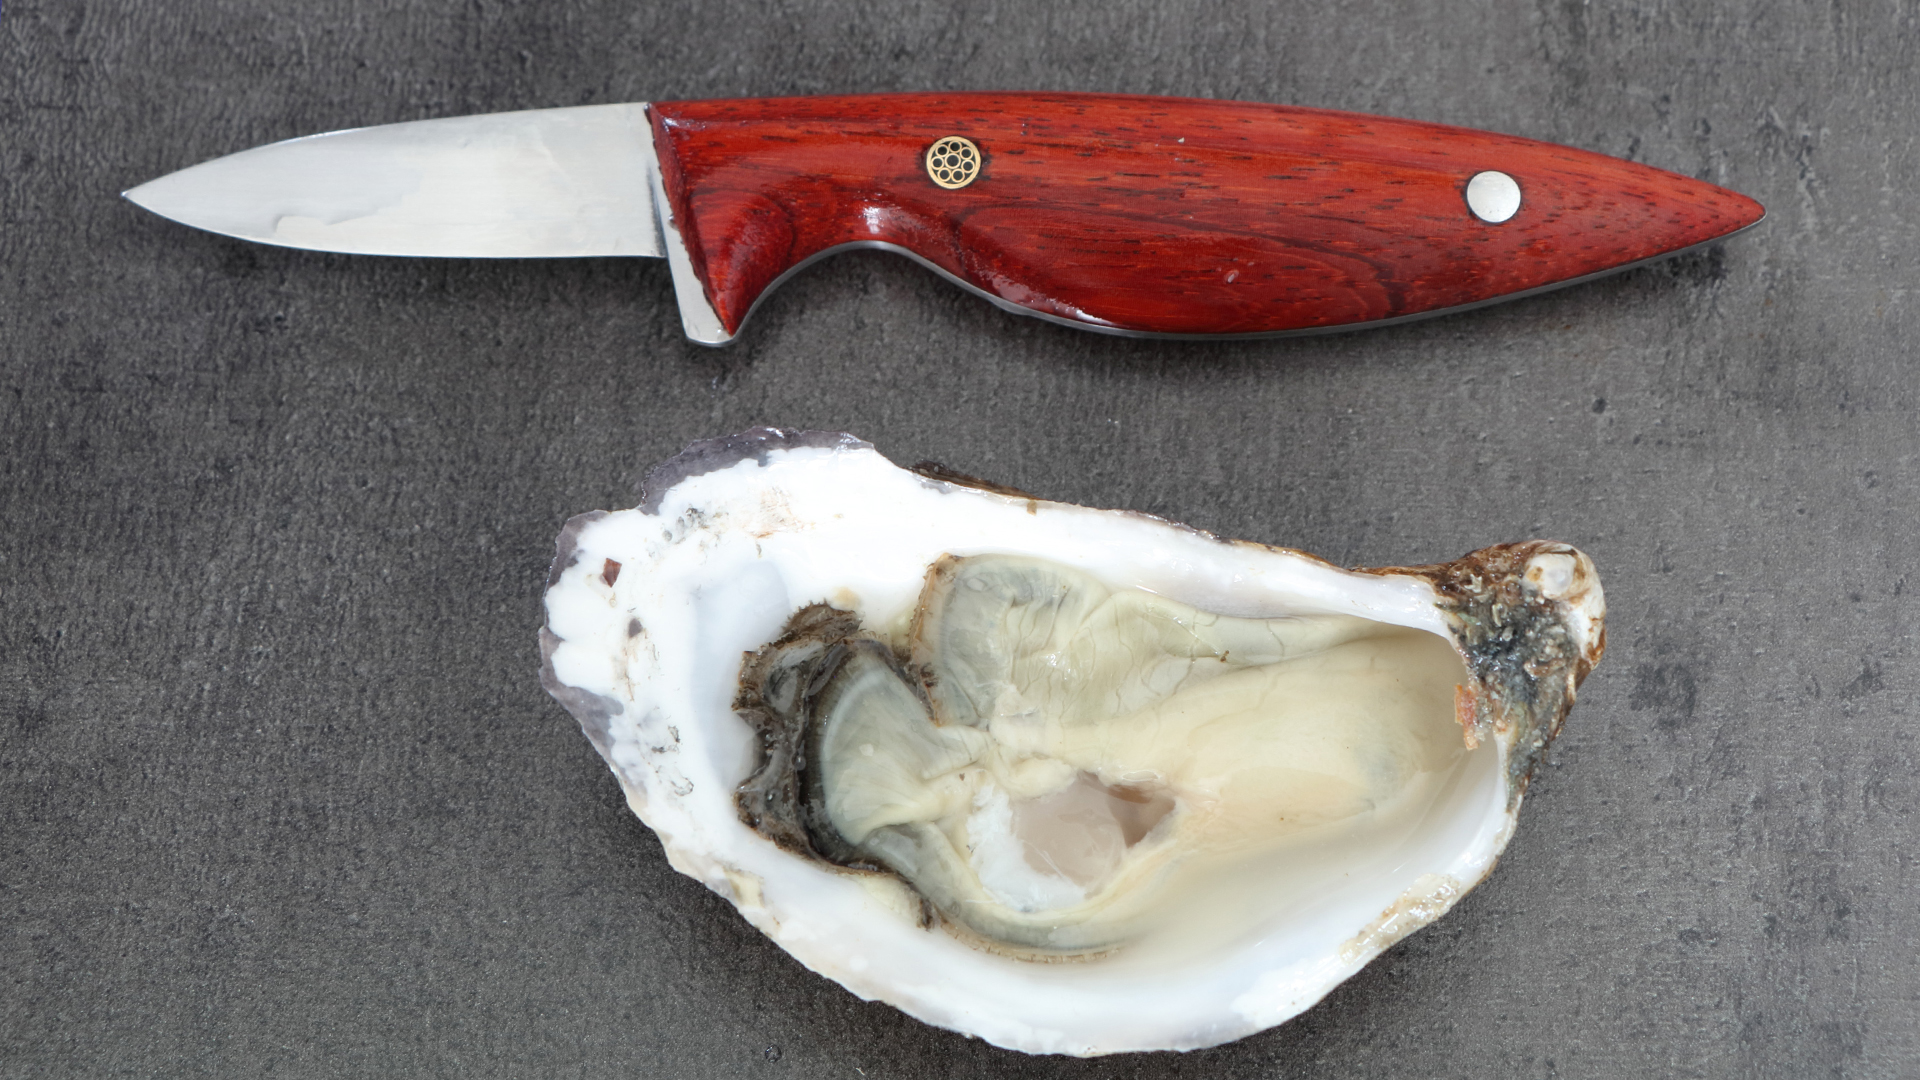 This oyster knife is perfect as a gift for oyster lovers!